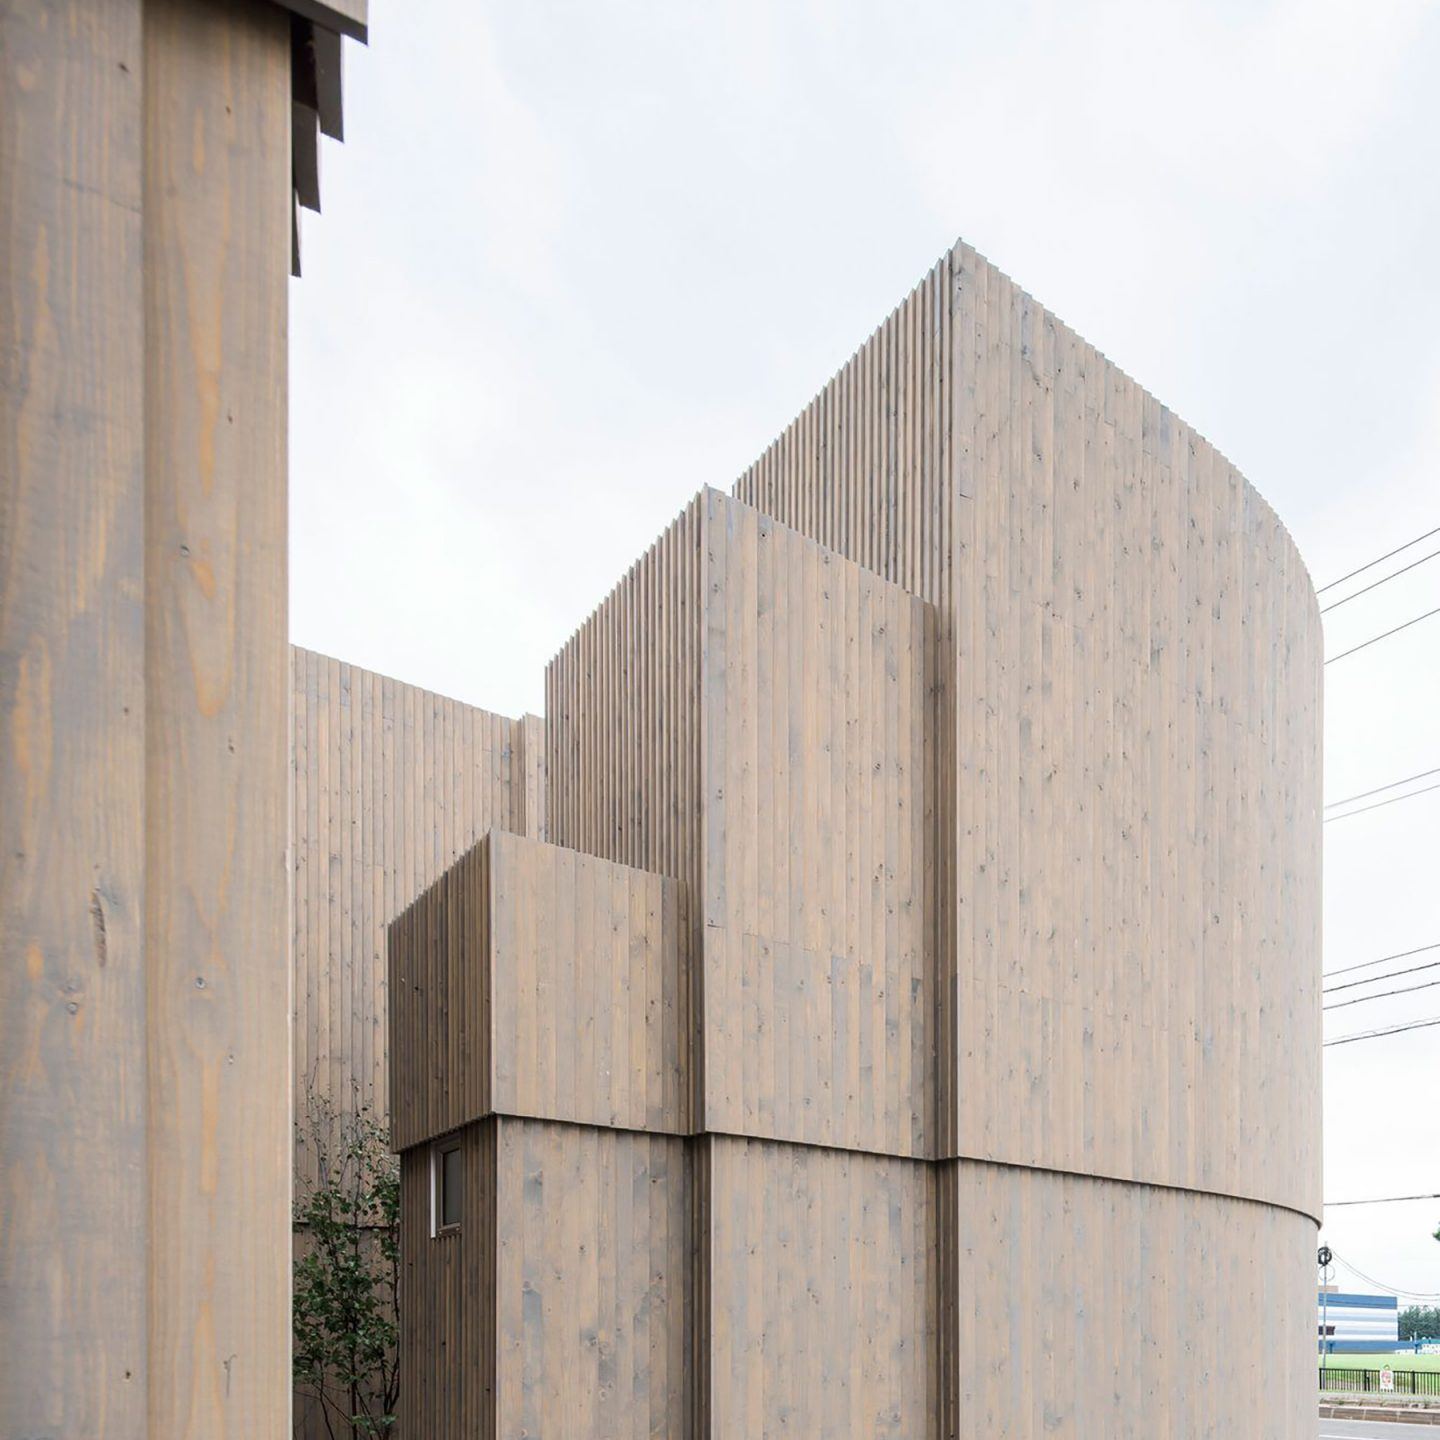 IGNANT-Architecture-Jun-Igarashi-Corridor-Of-The-Fold-5